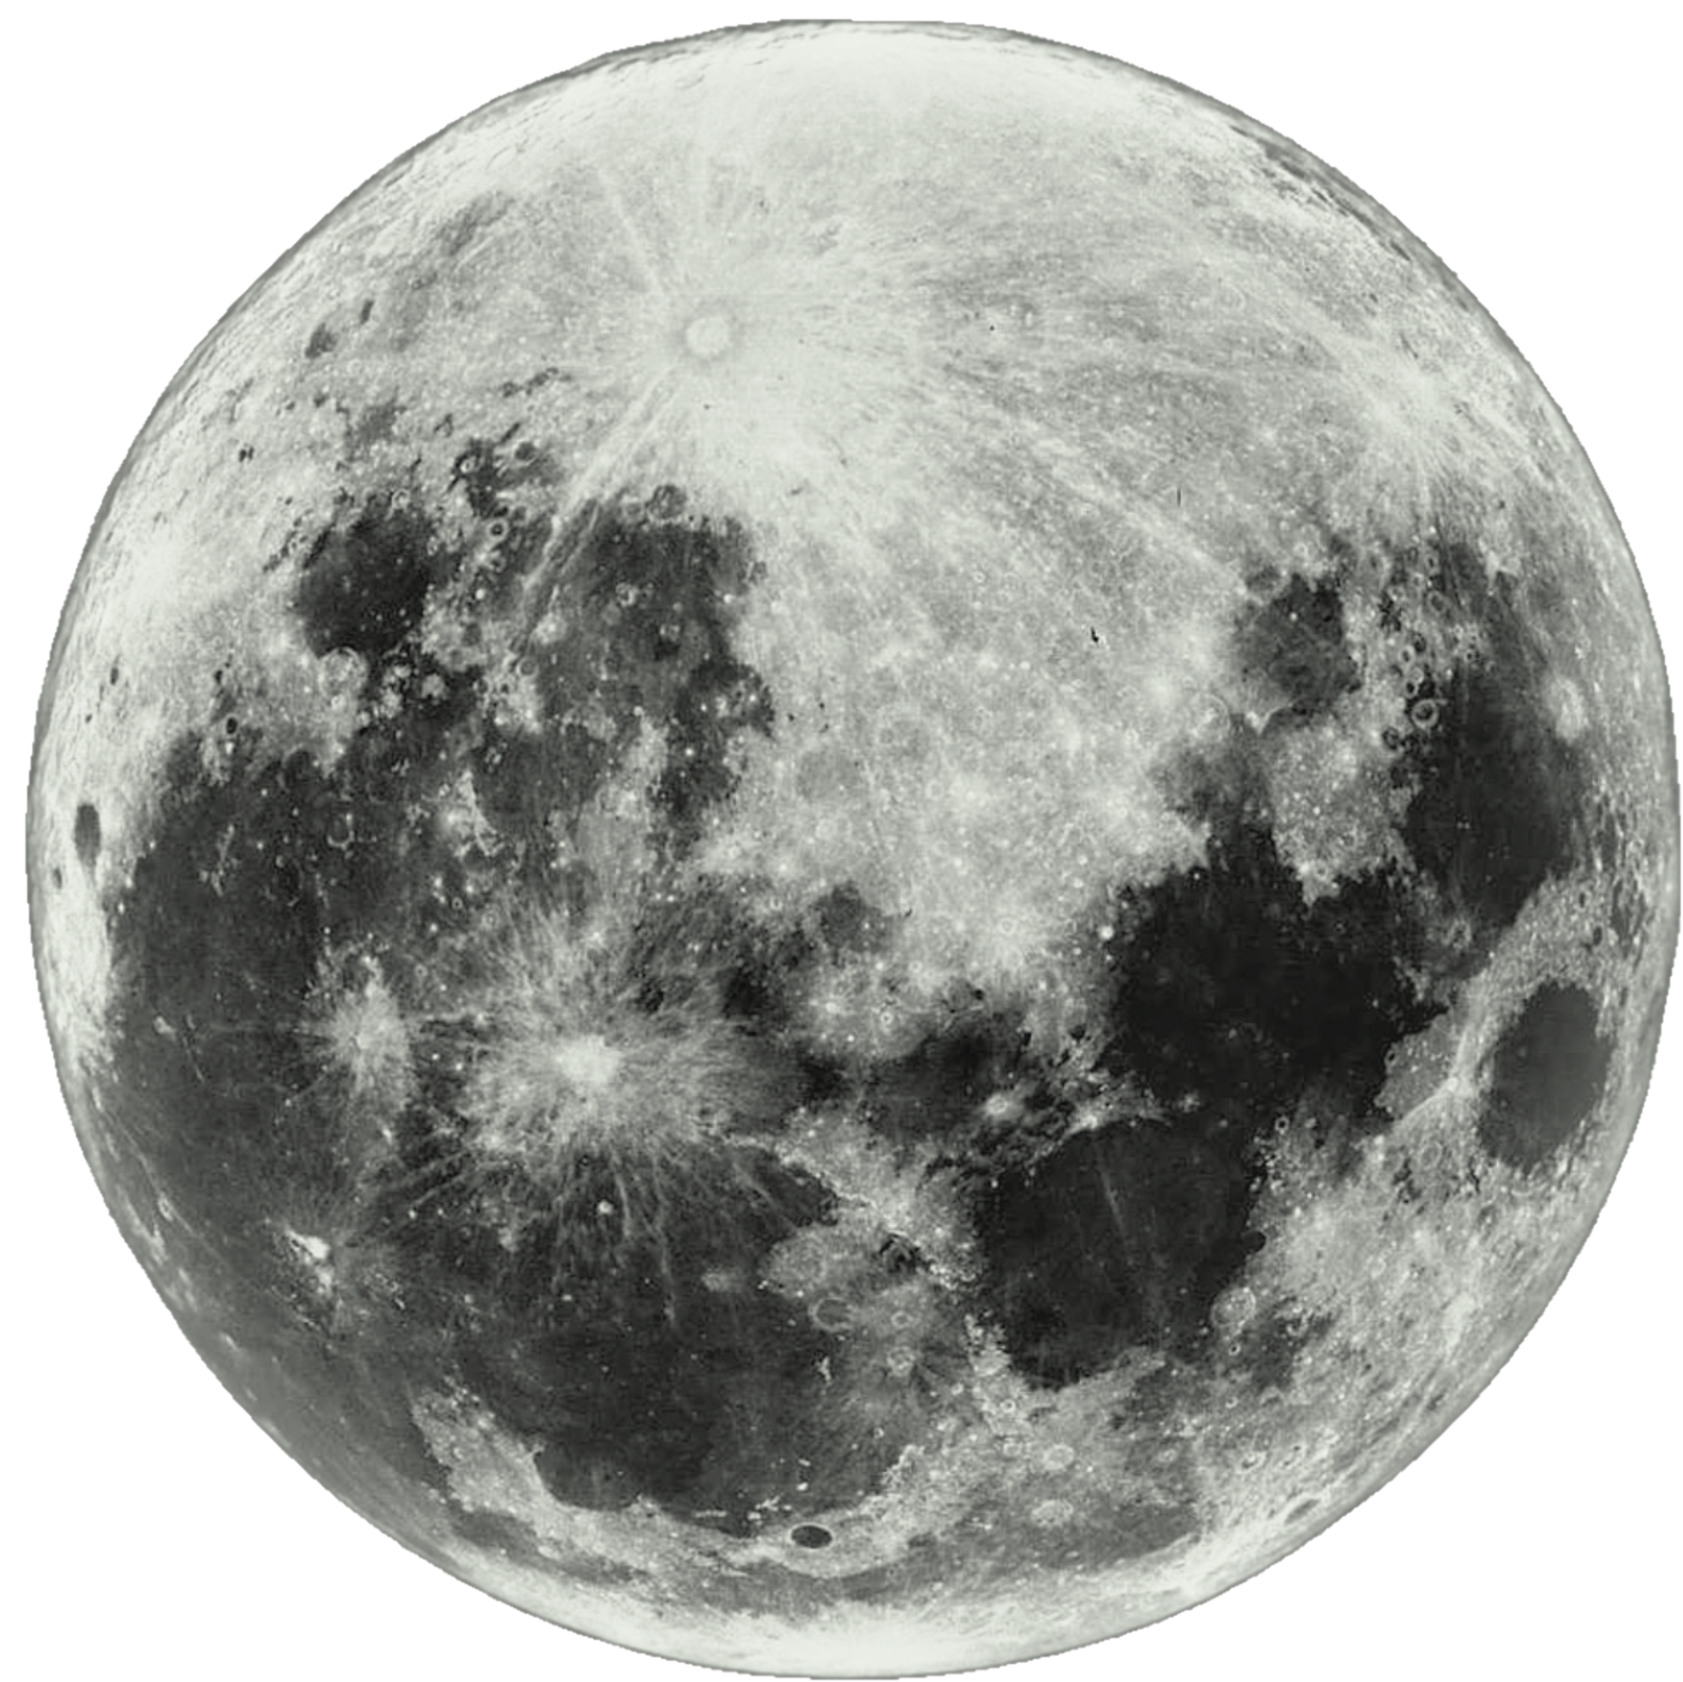 Free Full Moon Transparent Background, Download Free Clip.